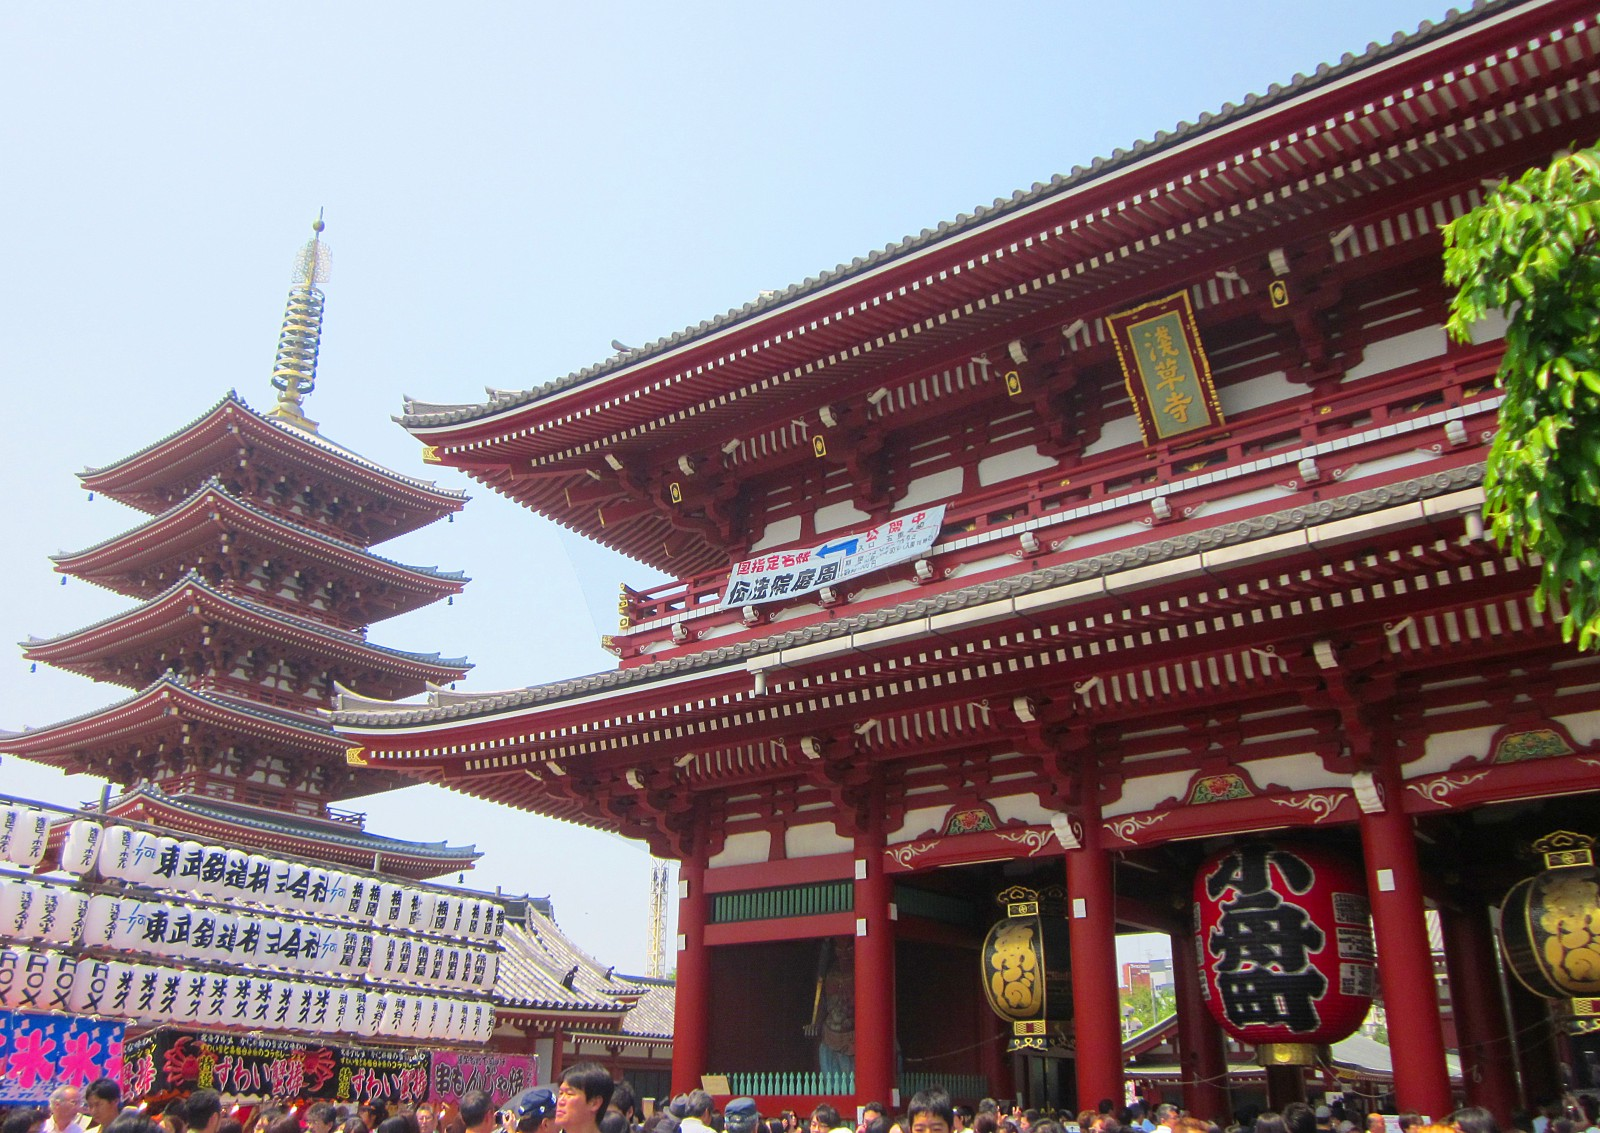 The entrance of Asakusa Sensoji Temple